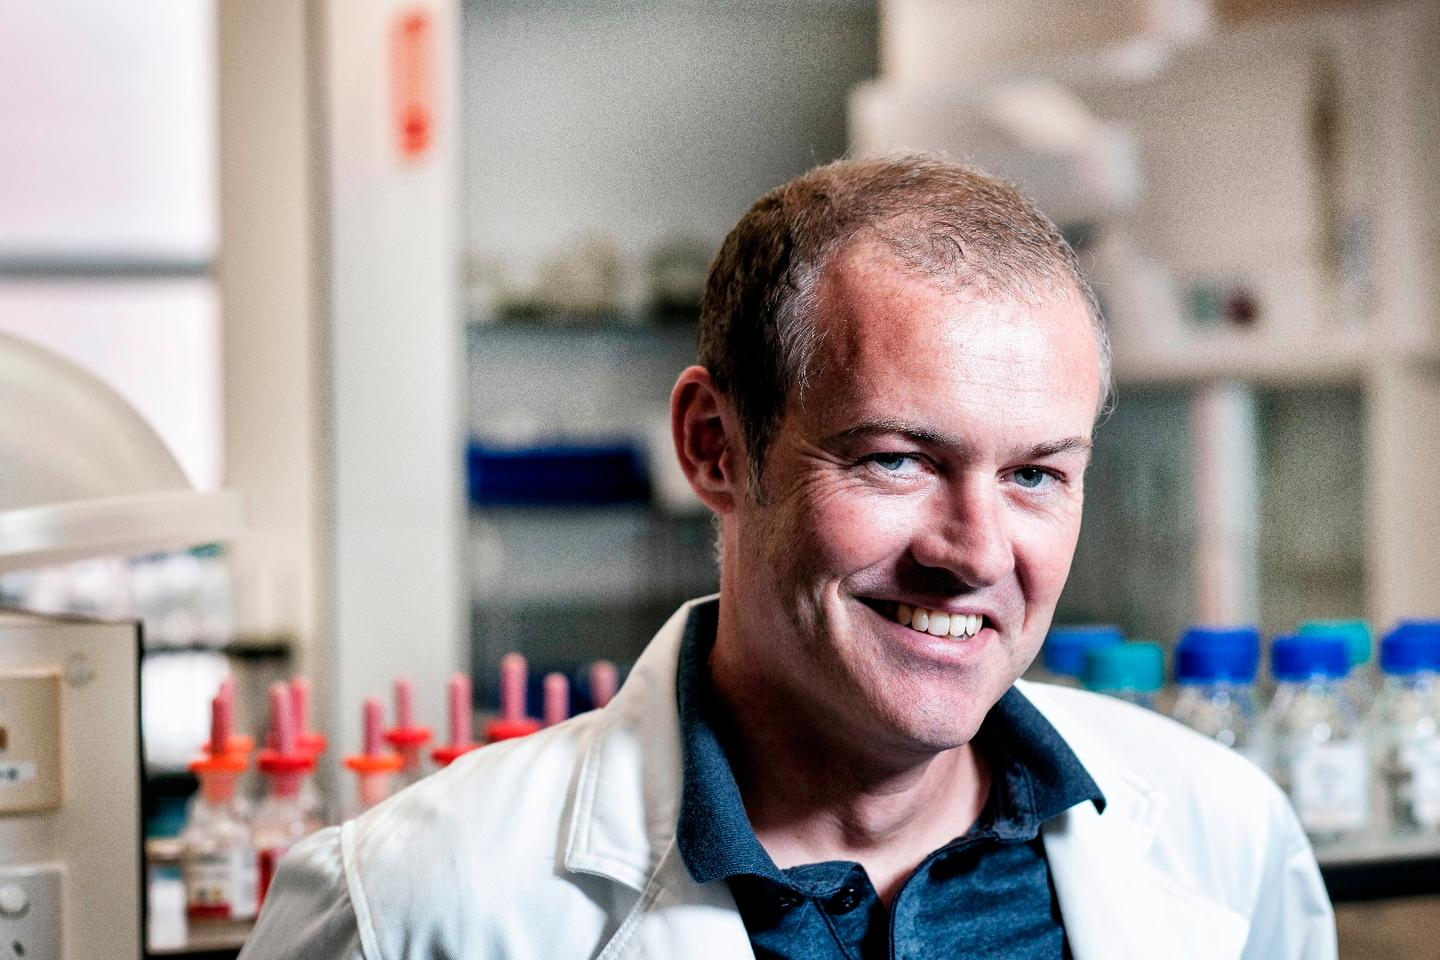 Professor Anthony O'Mullane from the Queensland University of Technology teamed up with other Australian researchers to develop the material